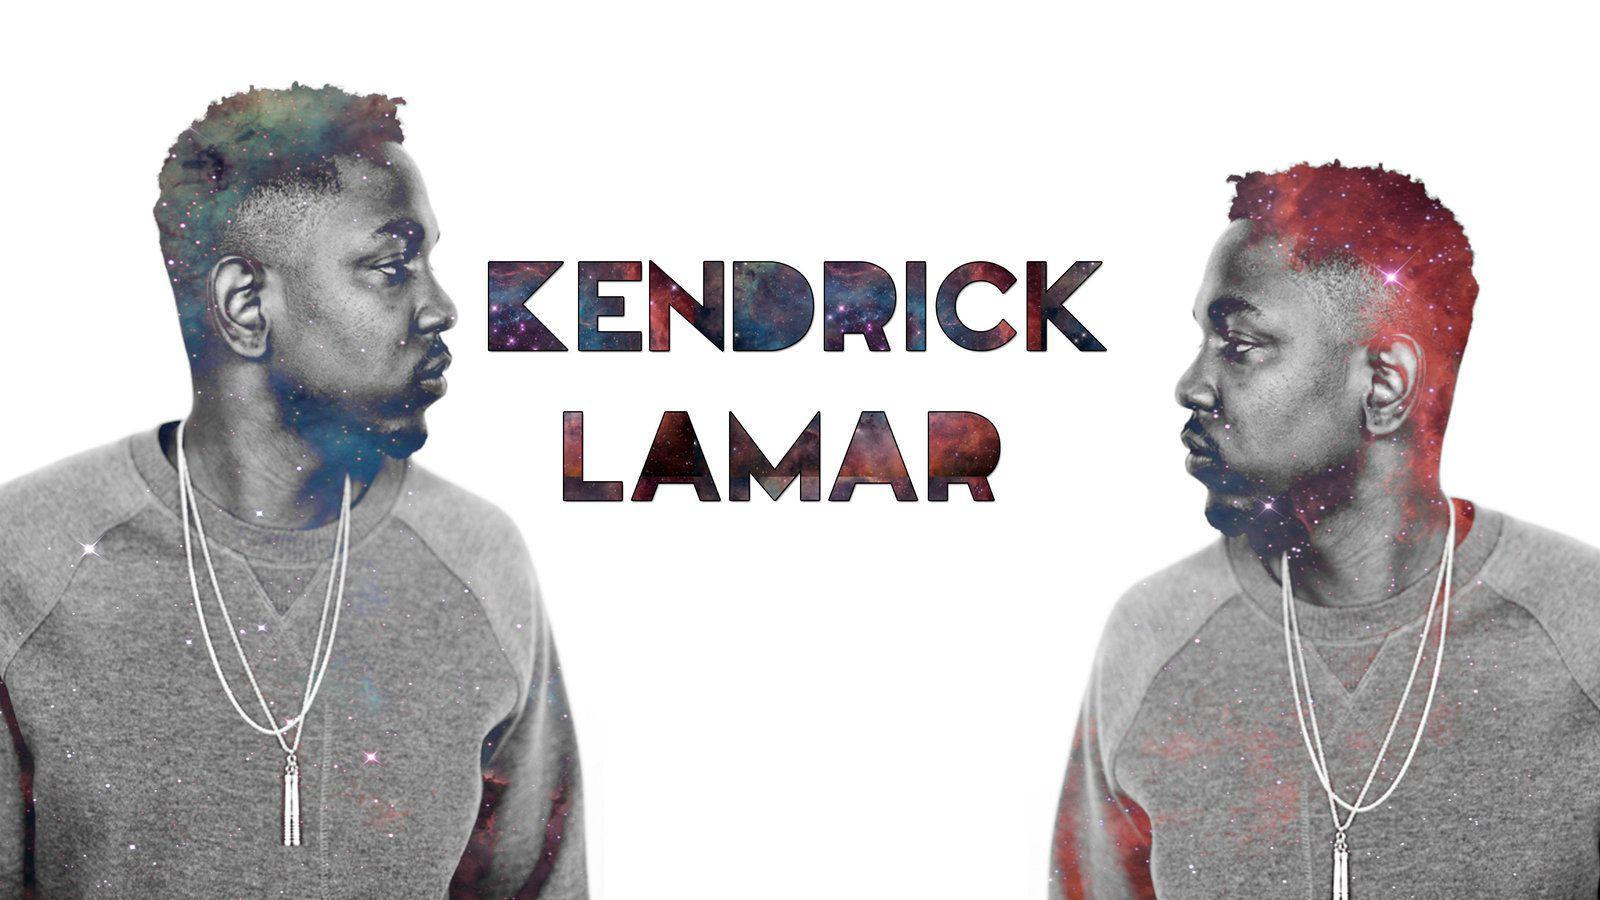 Kendrick Lamar Swimming Pools Wallpaper